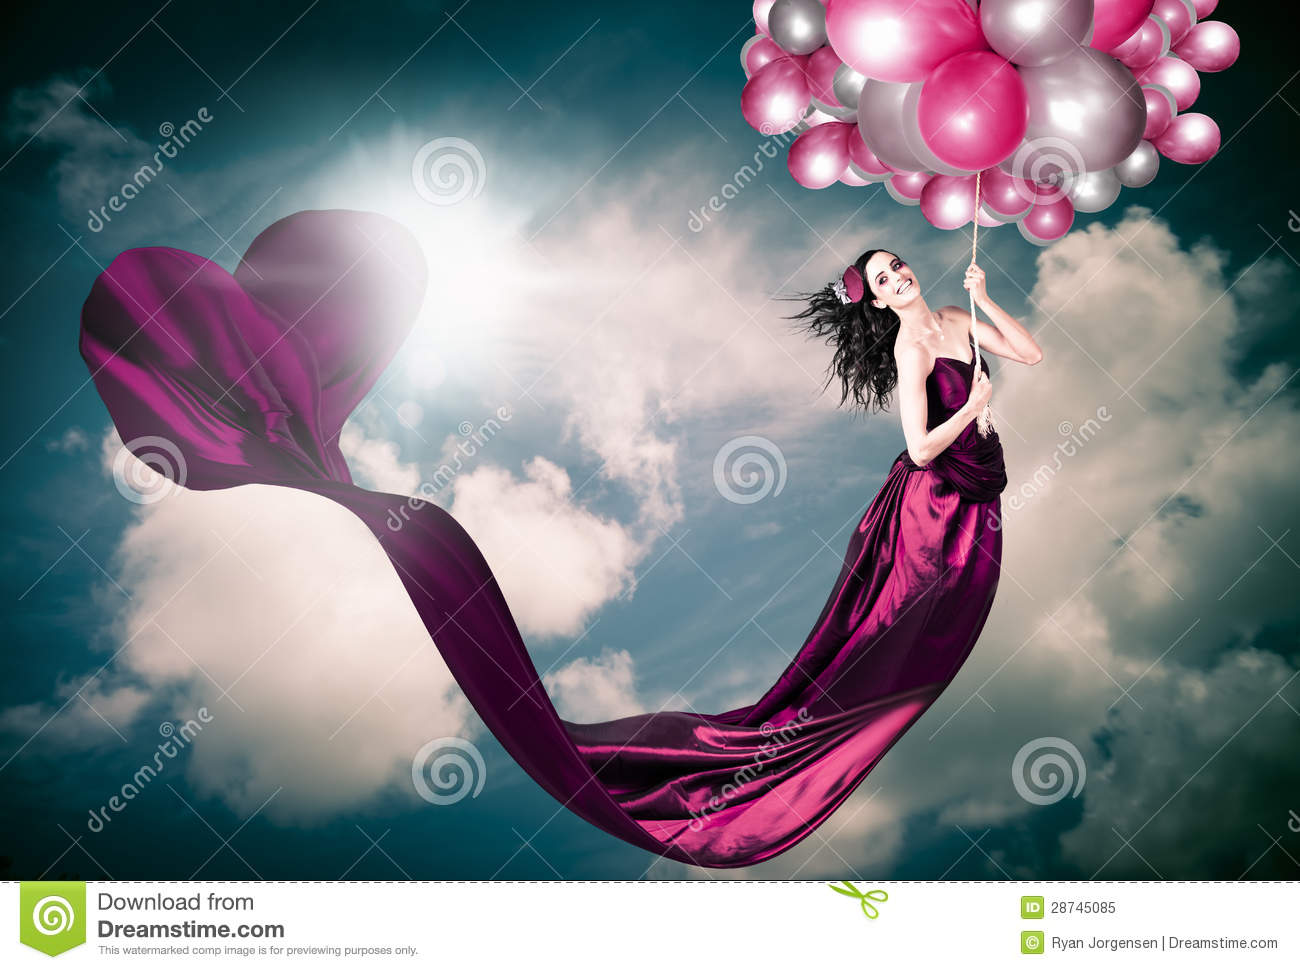 Romantic Girl In Love With Beauty And Fashion Stock Image